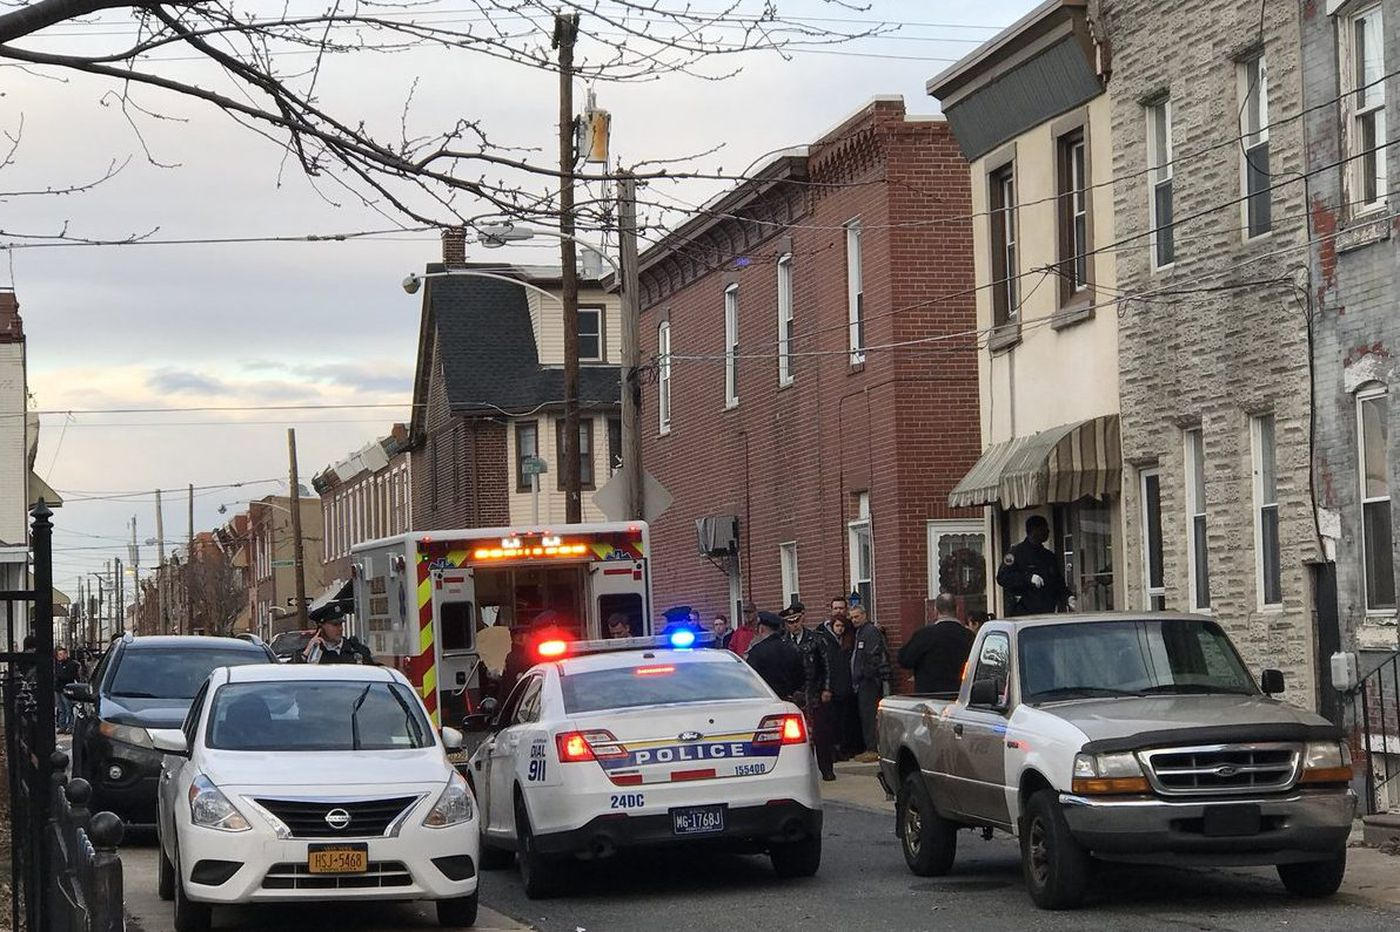 Female police officer, man found dead in Port Richmond home